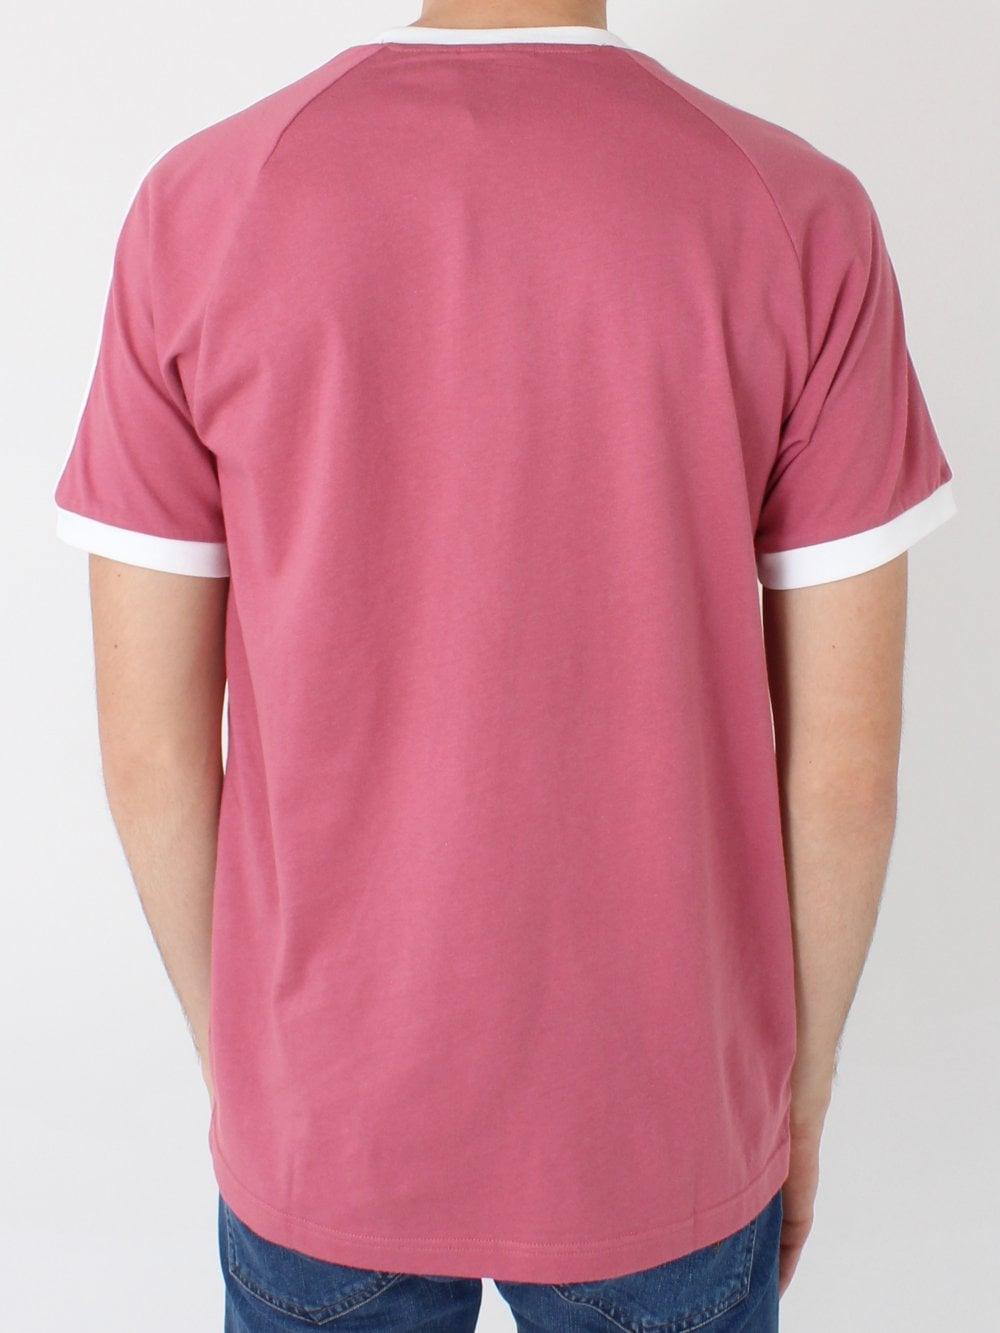 3 Stripes T.Shirt - Pink Mist